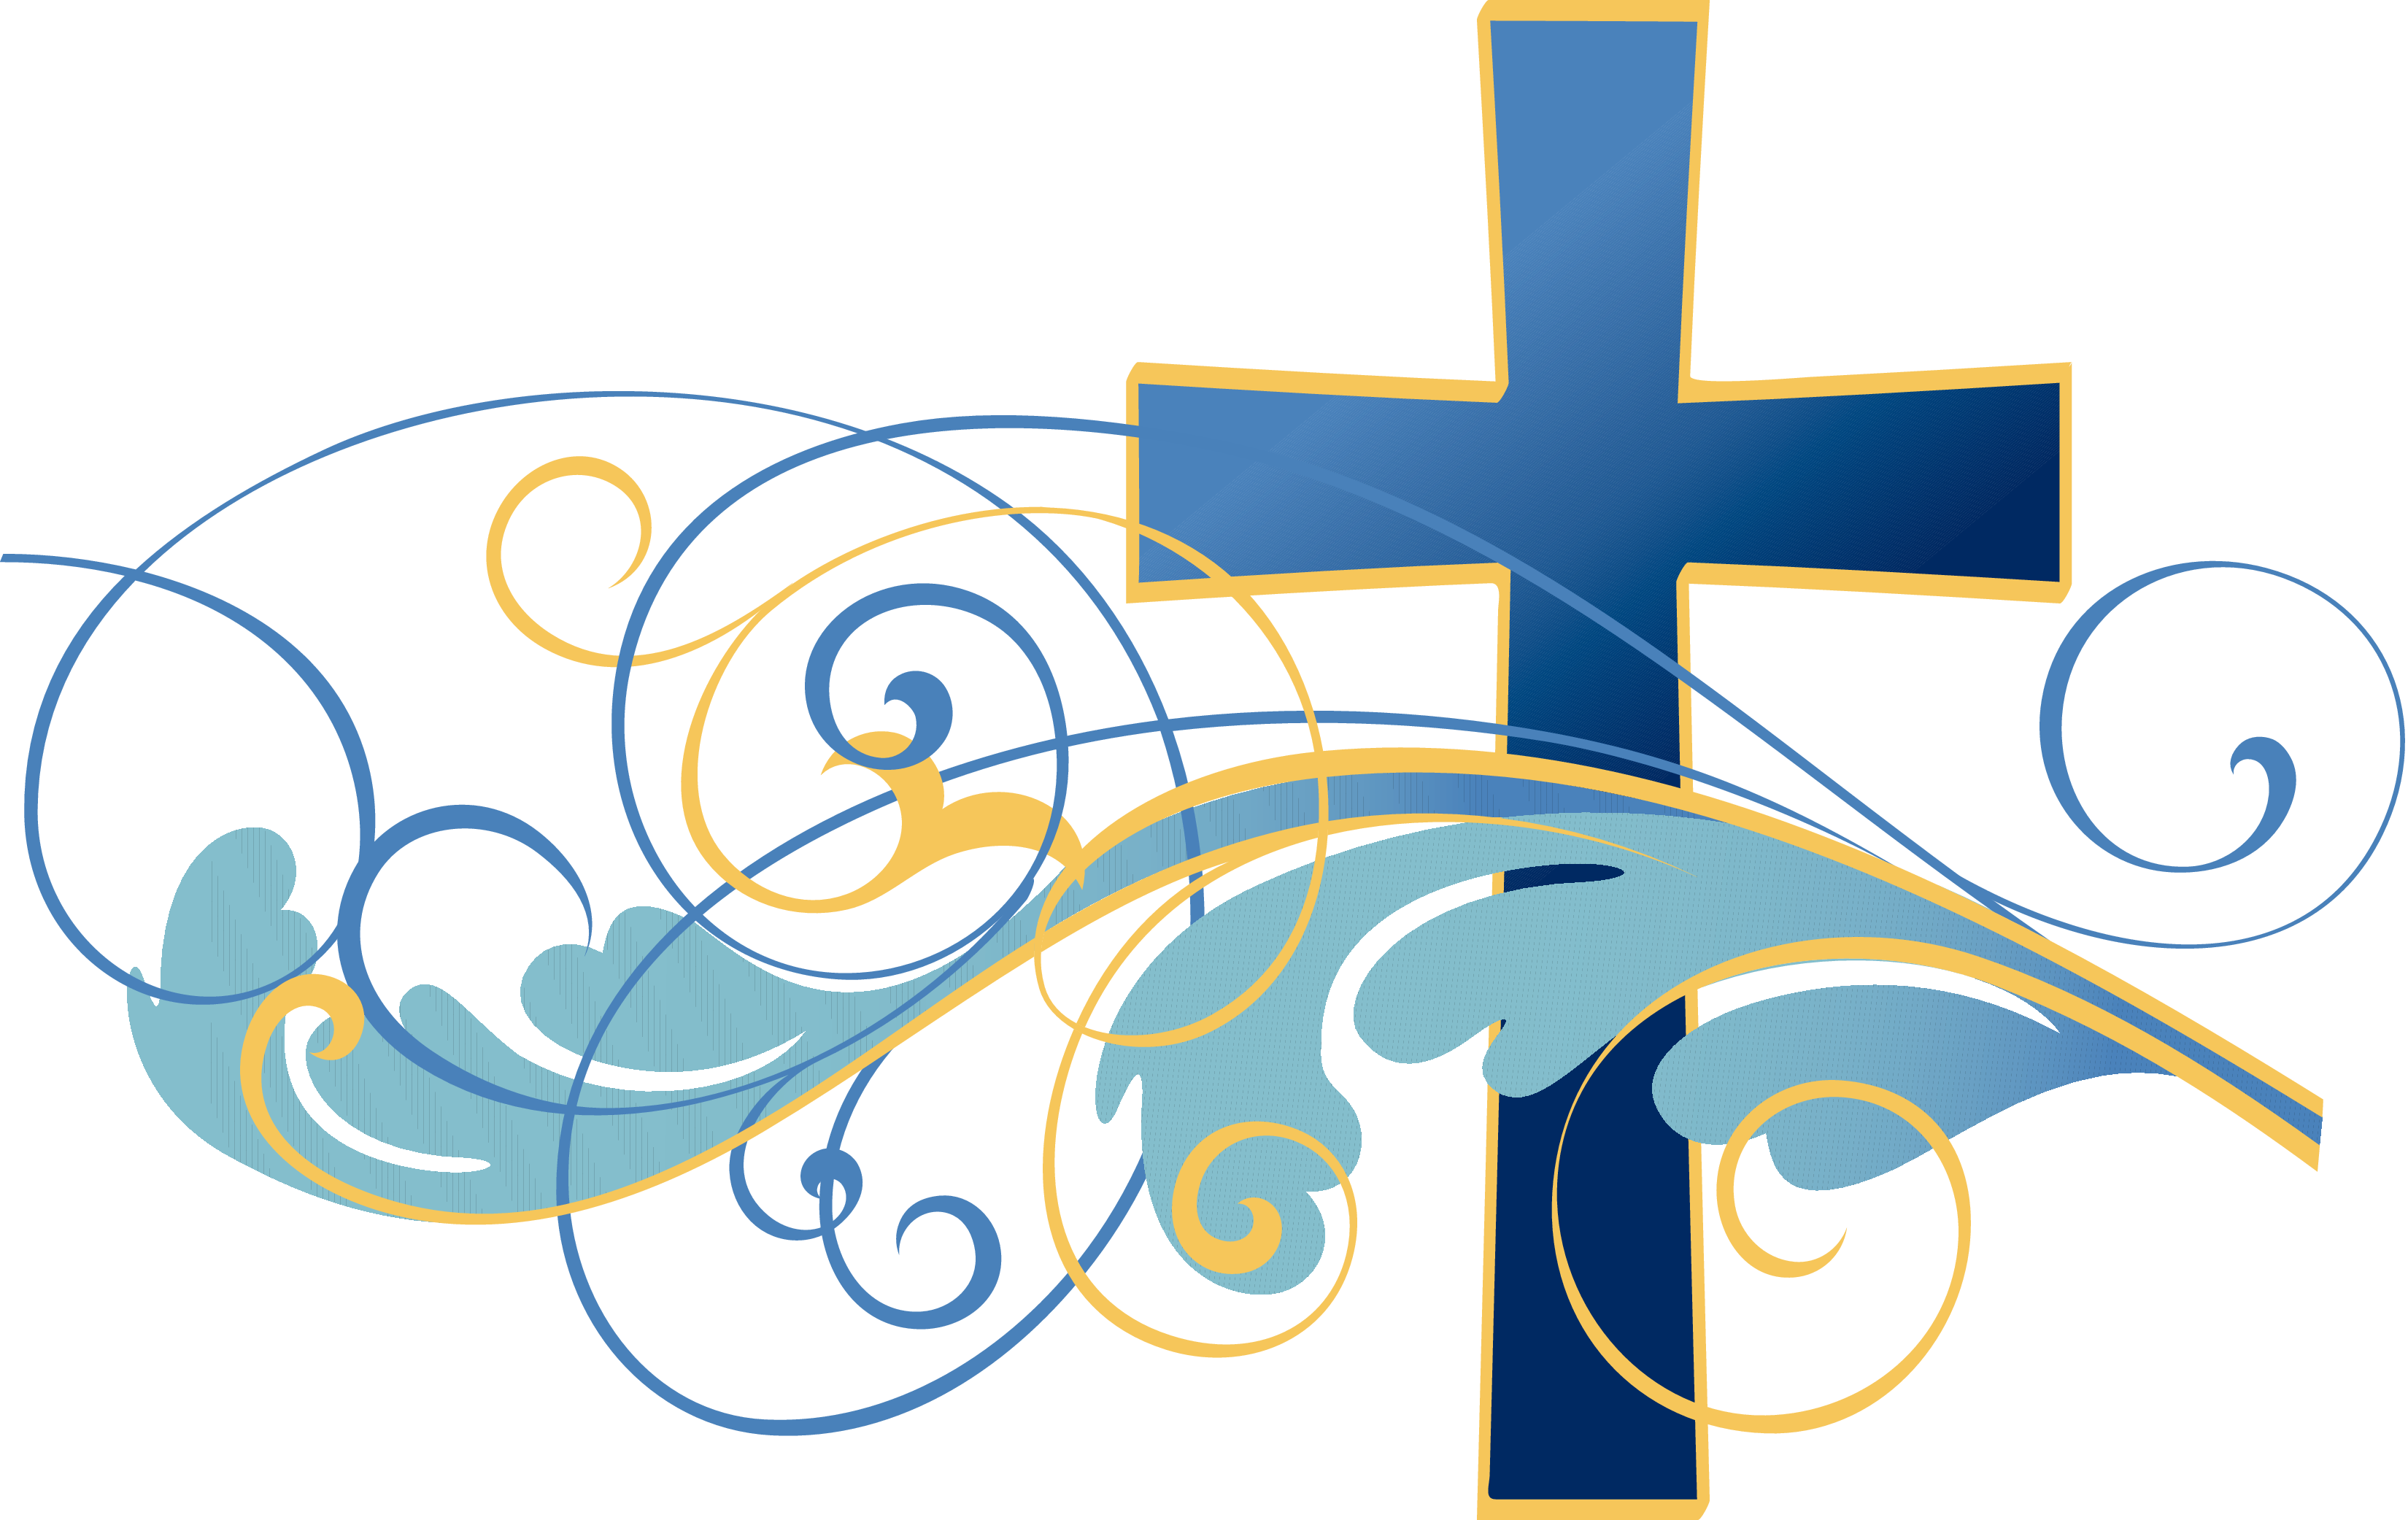 Designed by the top. Music clipart religious